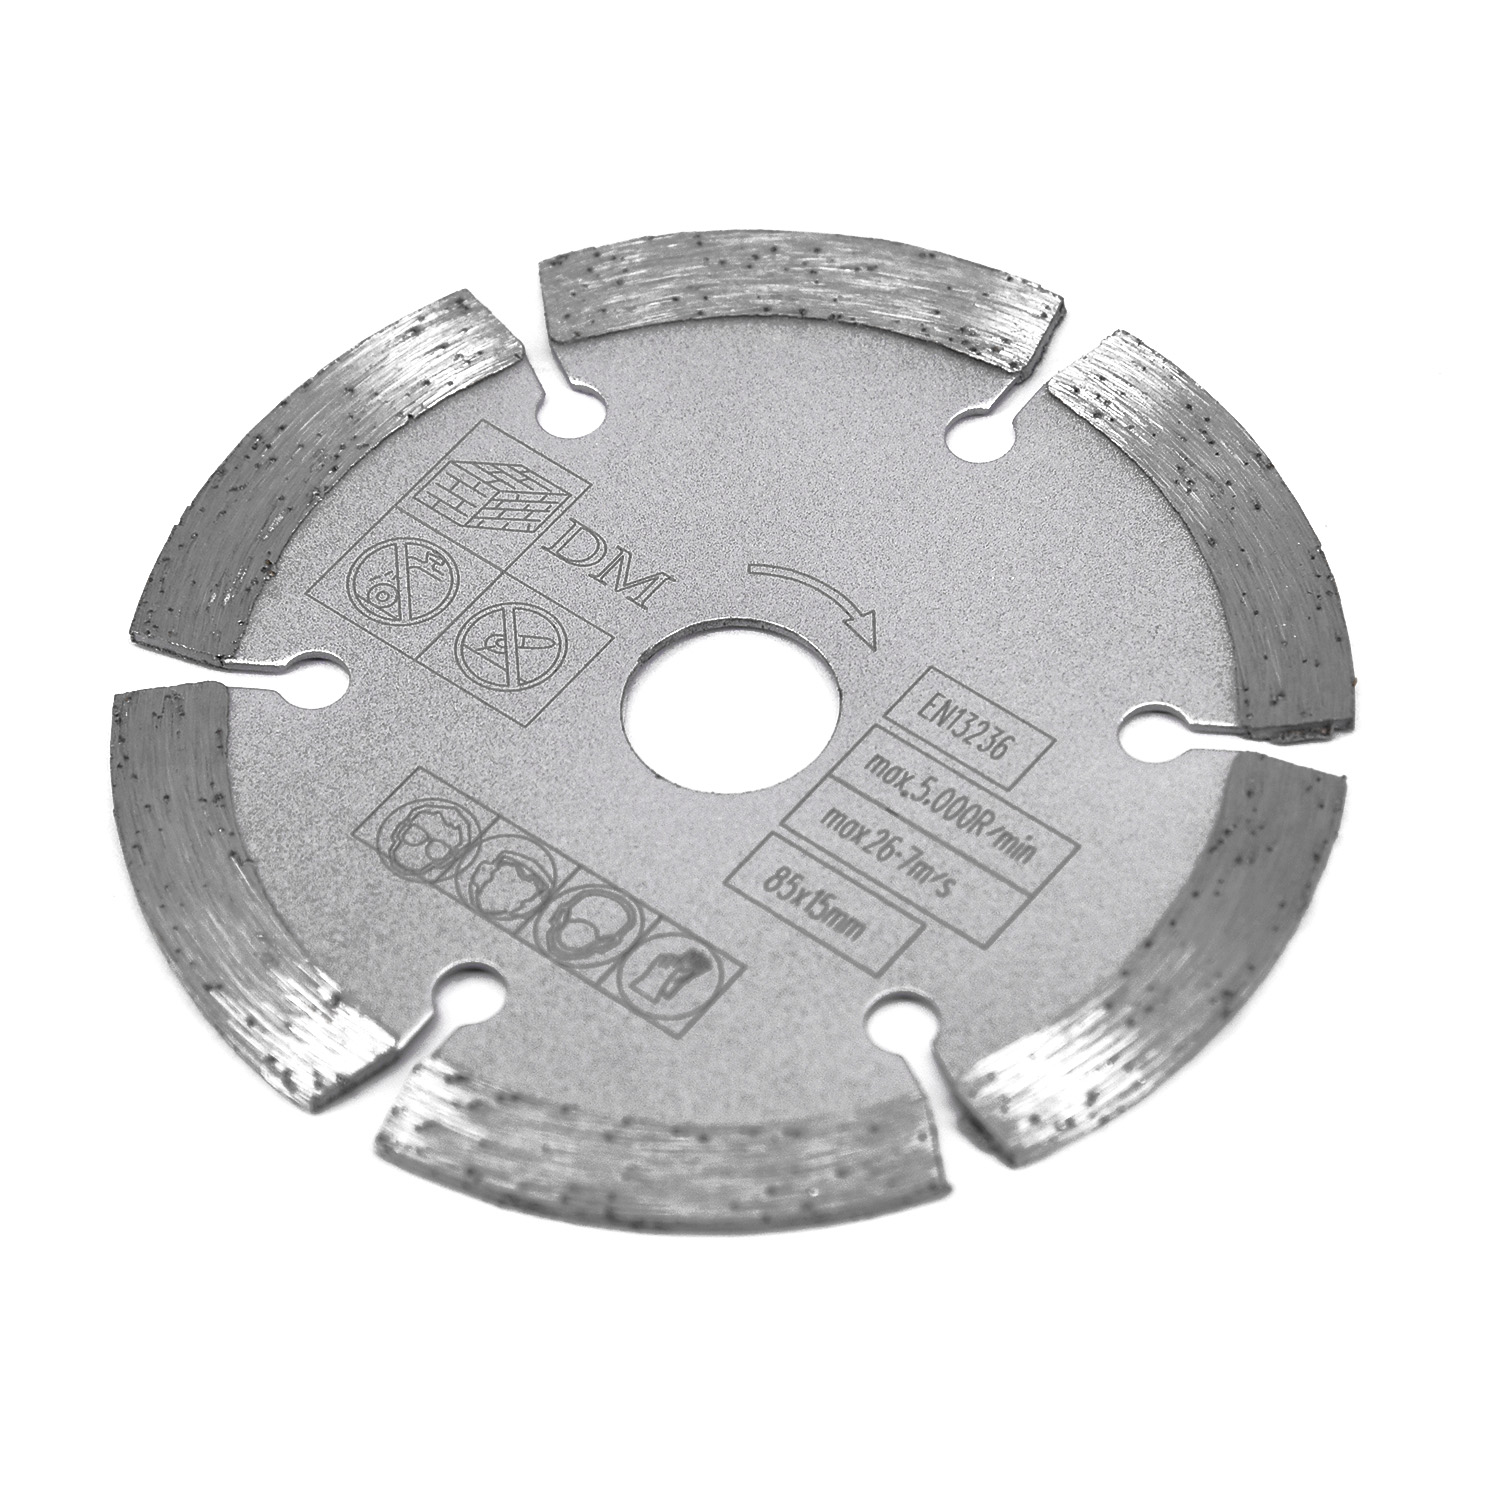 1pc 85mm 15mm Bore Diamond Segmented Circular Saw Blade For Makita Bosch For Wood Cutting Disc Woodworking Saw Blade